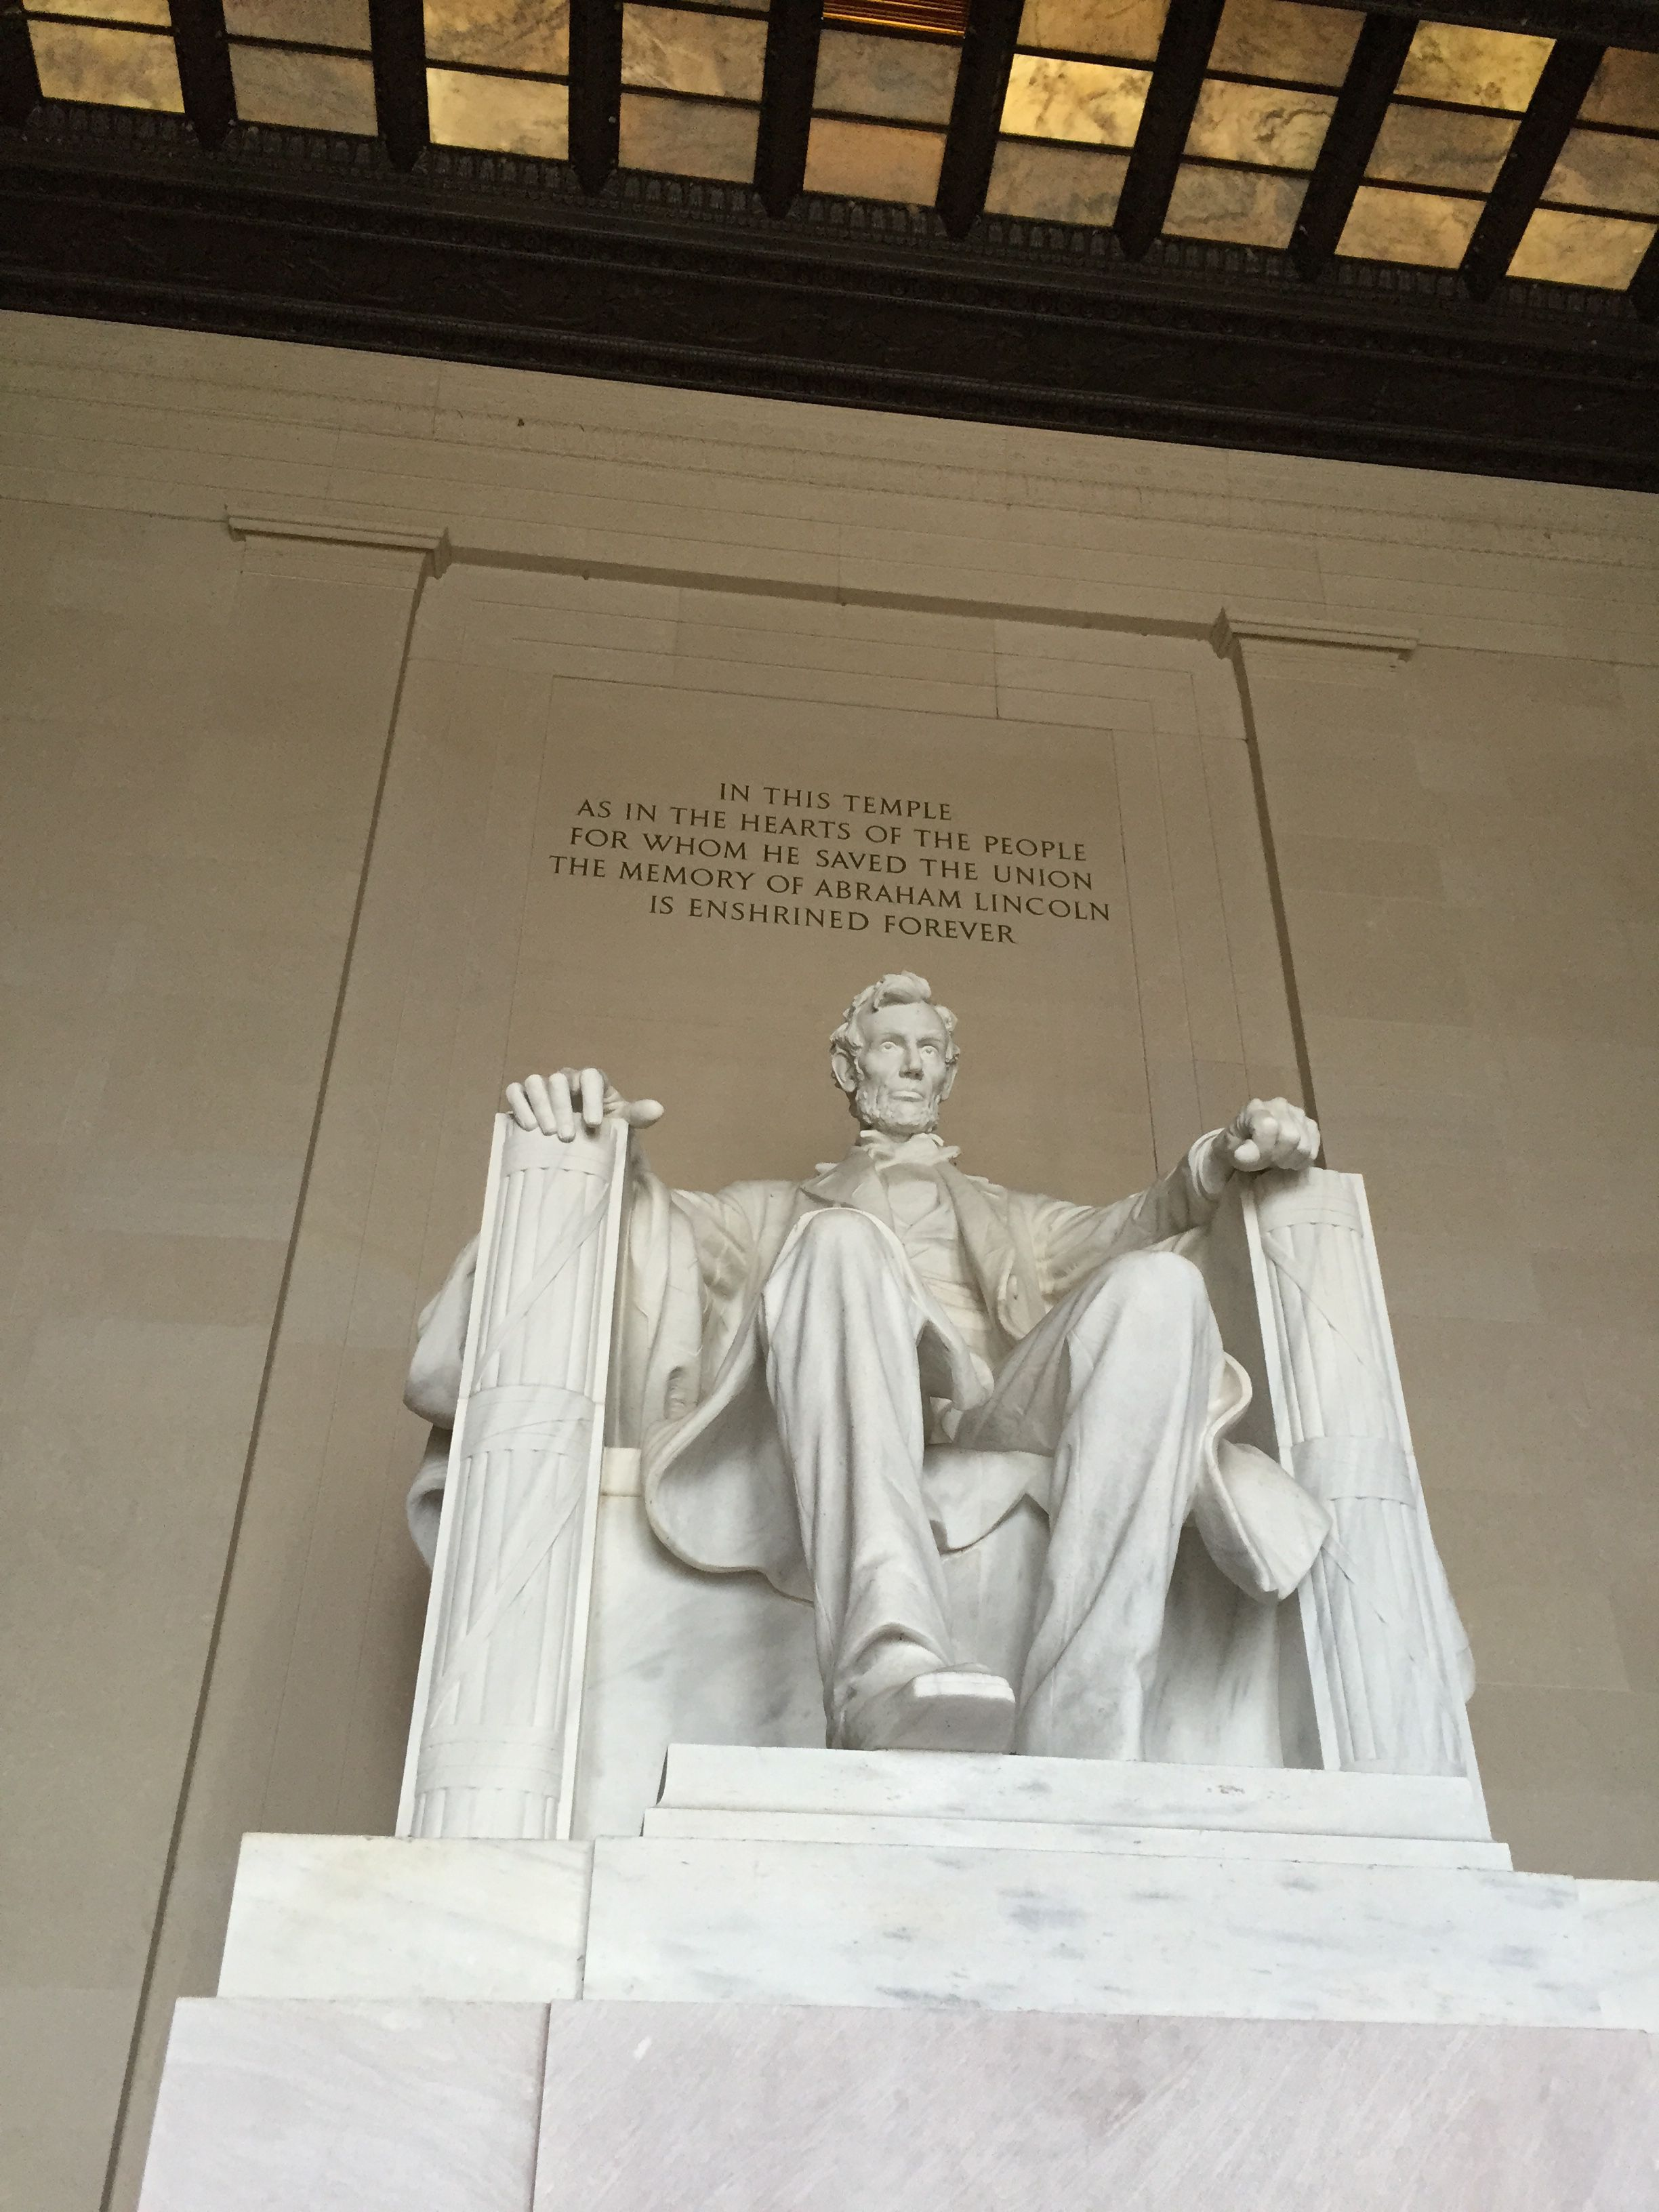 Abraham Lincoln Memorial in Washington, D.C. is a site to see!